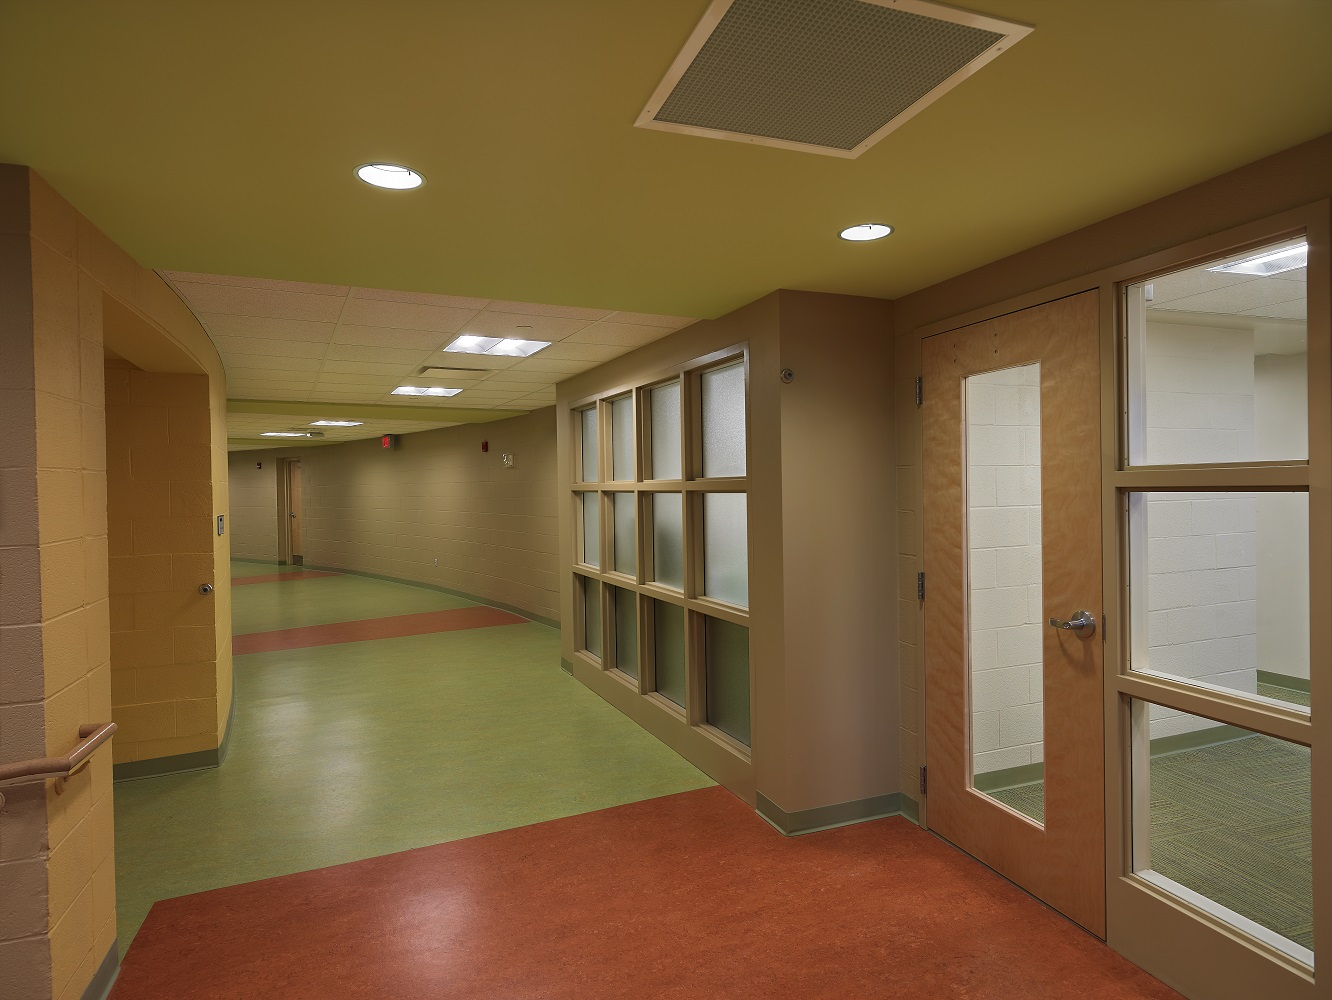 Interior - Hallway + Door Way.jpg